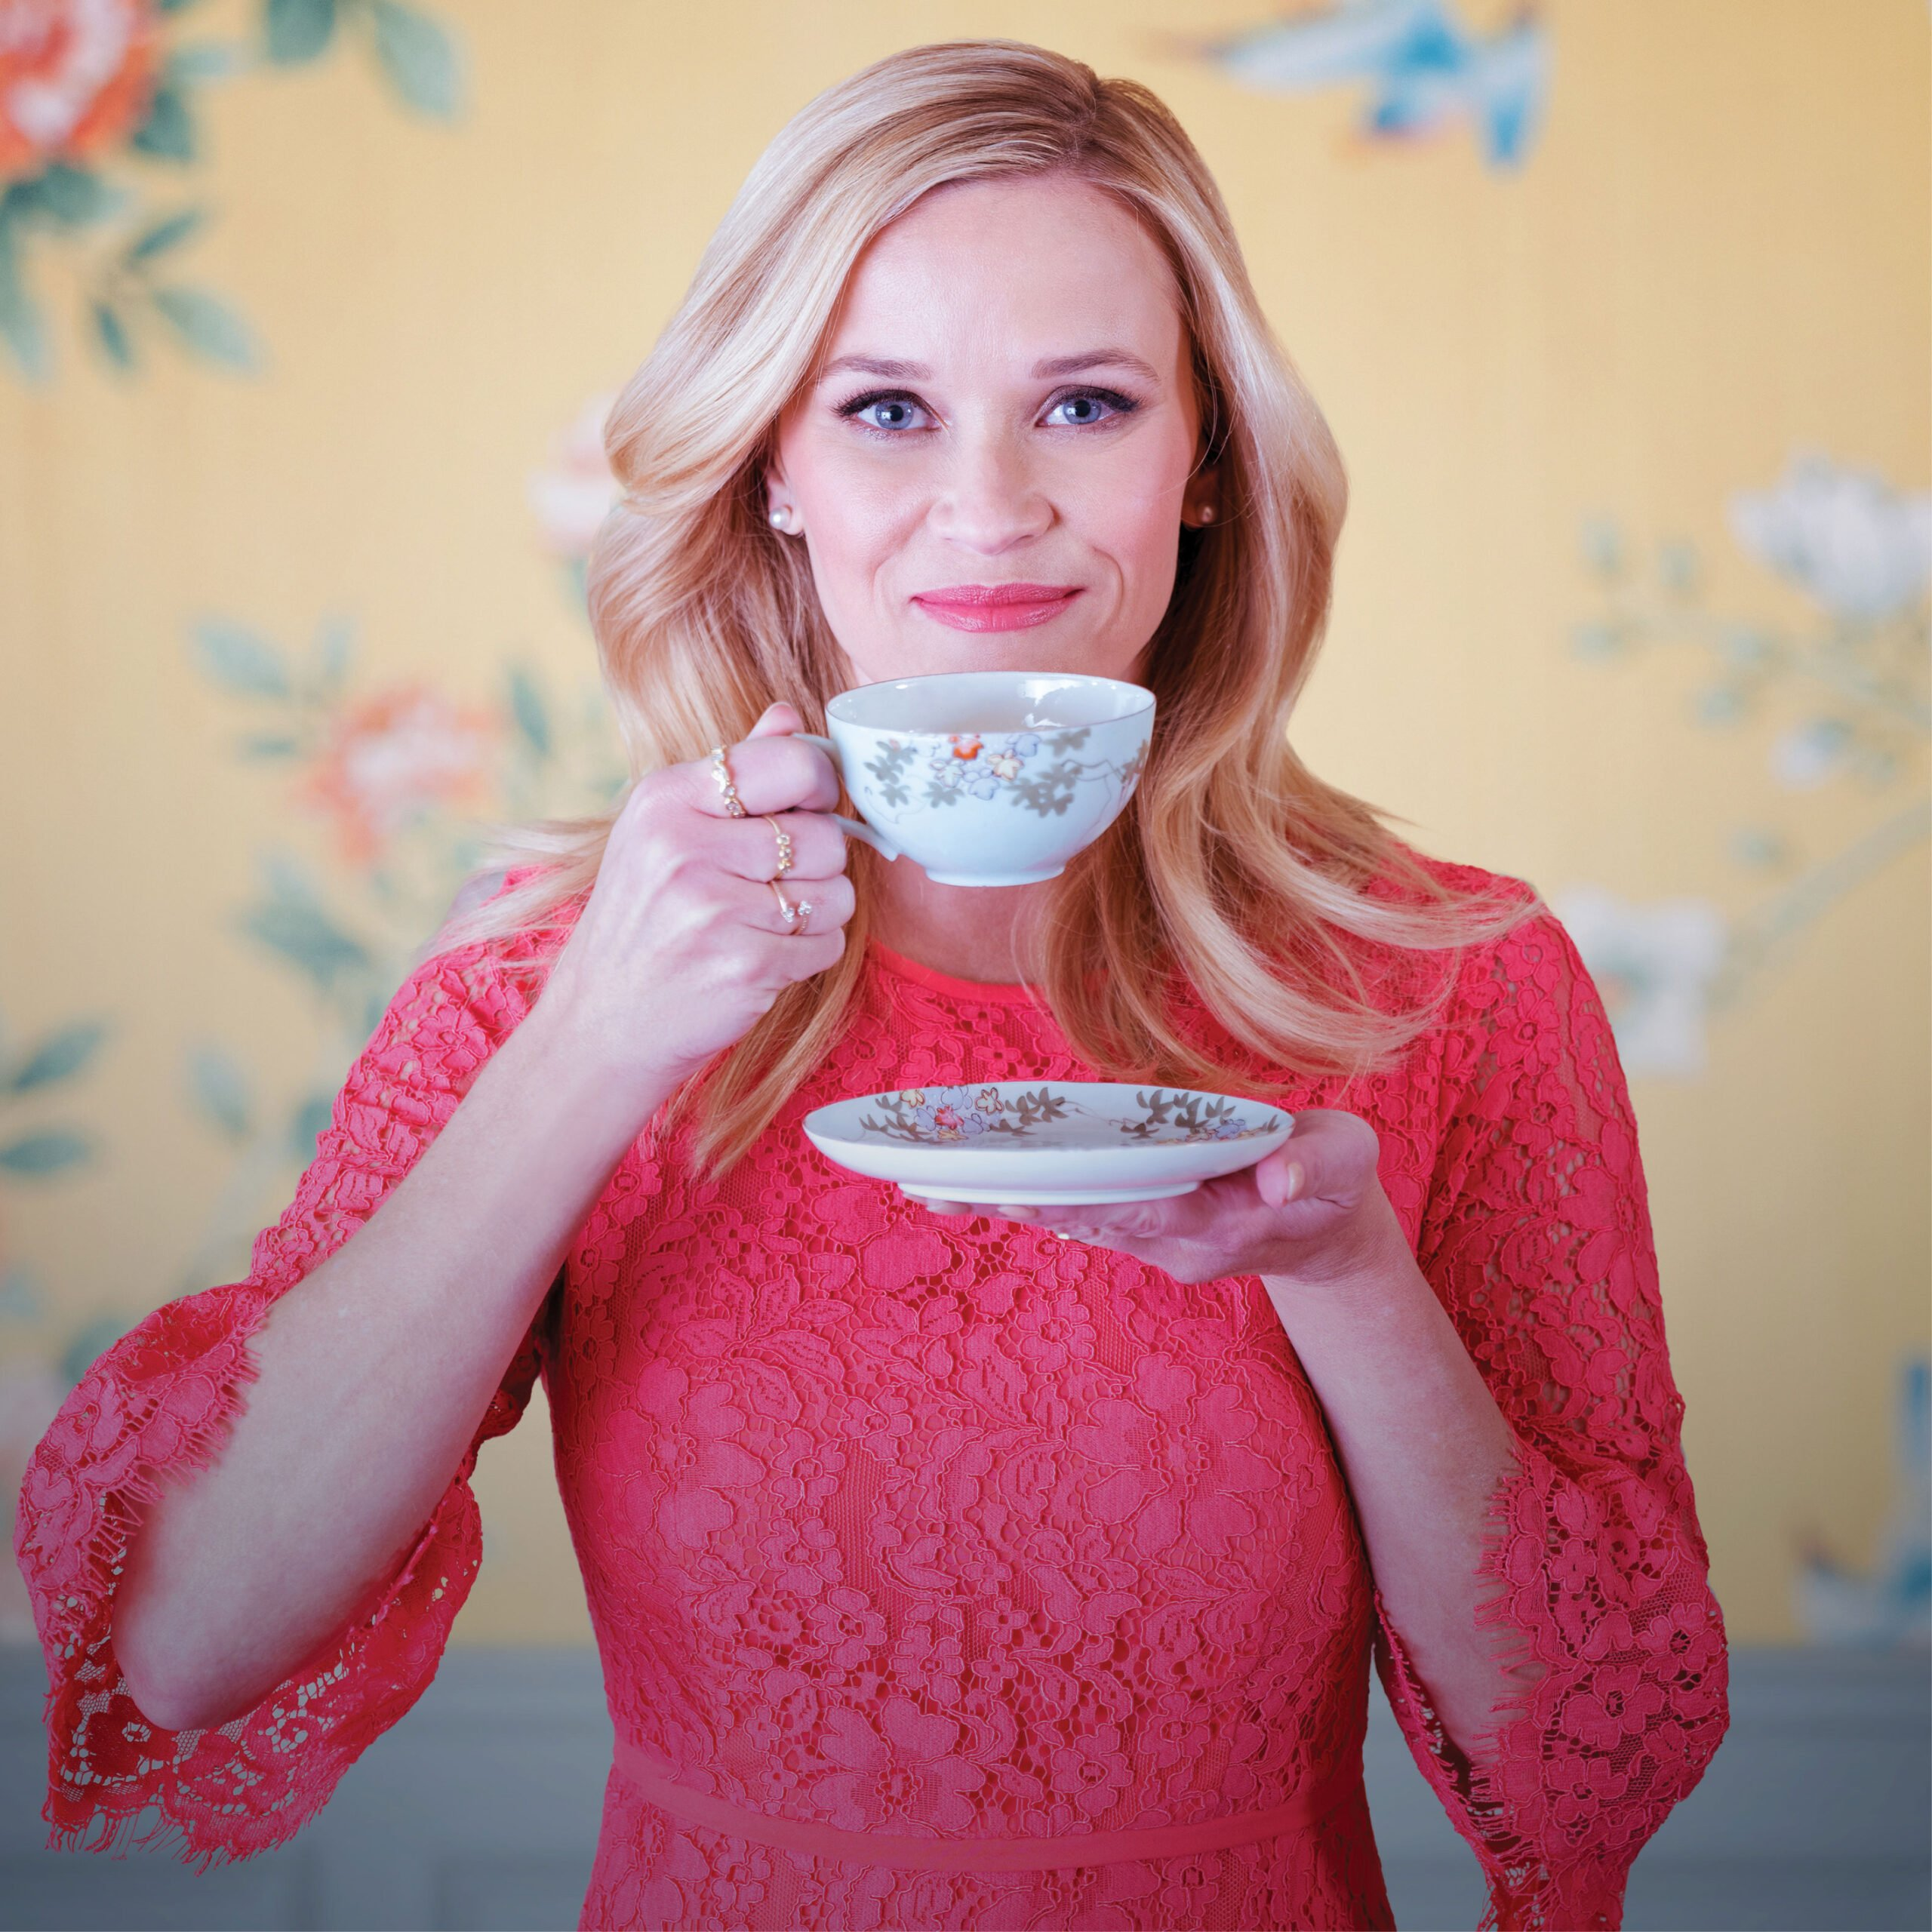 Reese Witherspoon Whiskey in a Teacup Tour @ Charleston Gaillard Center